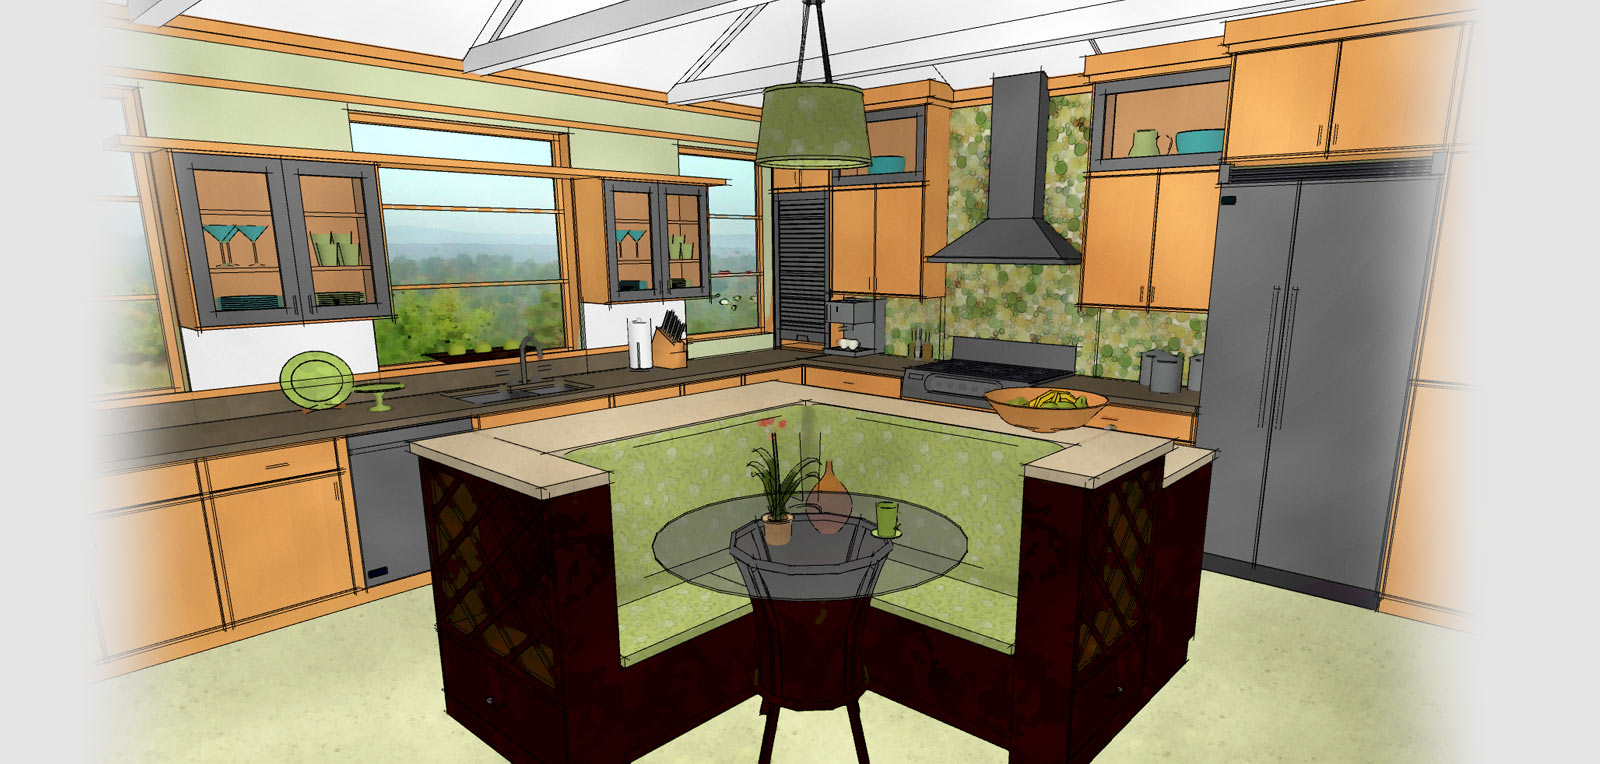 technical drawing of a kitchen generated by home designer - Kitchen Design Home